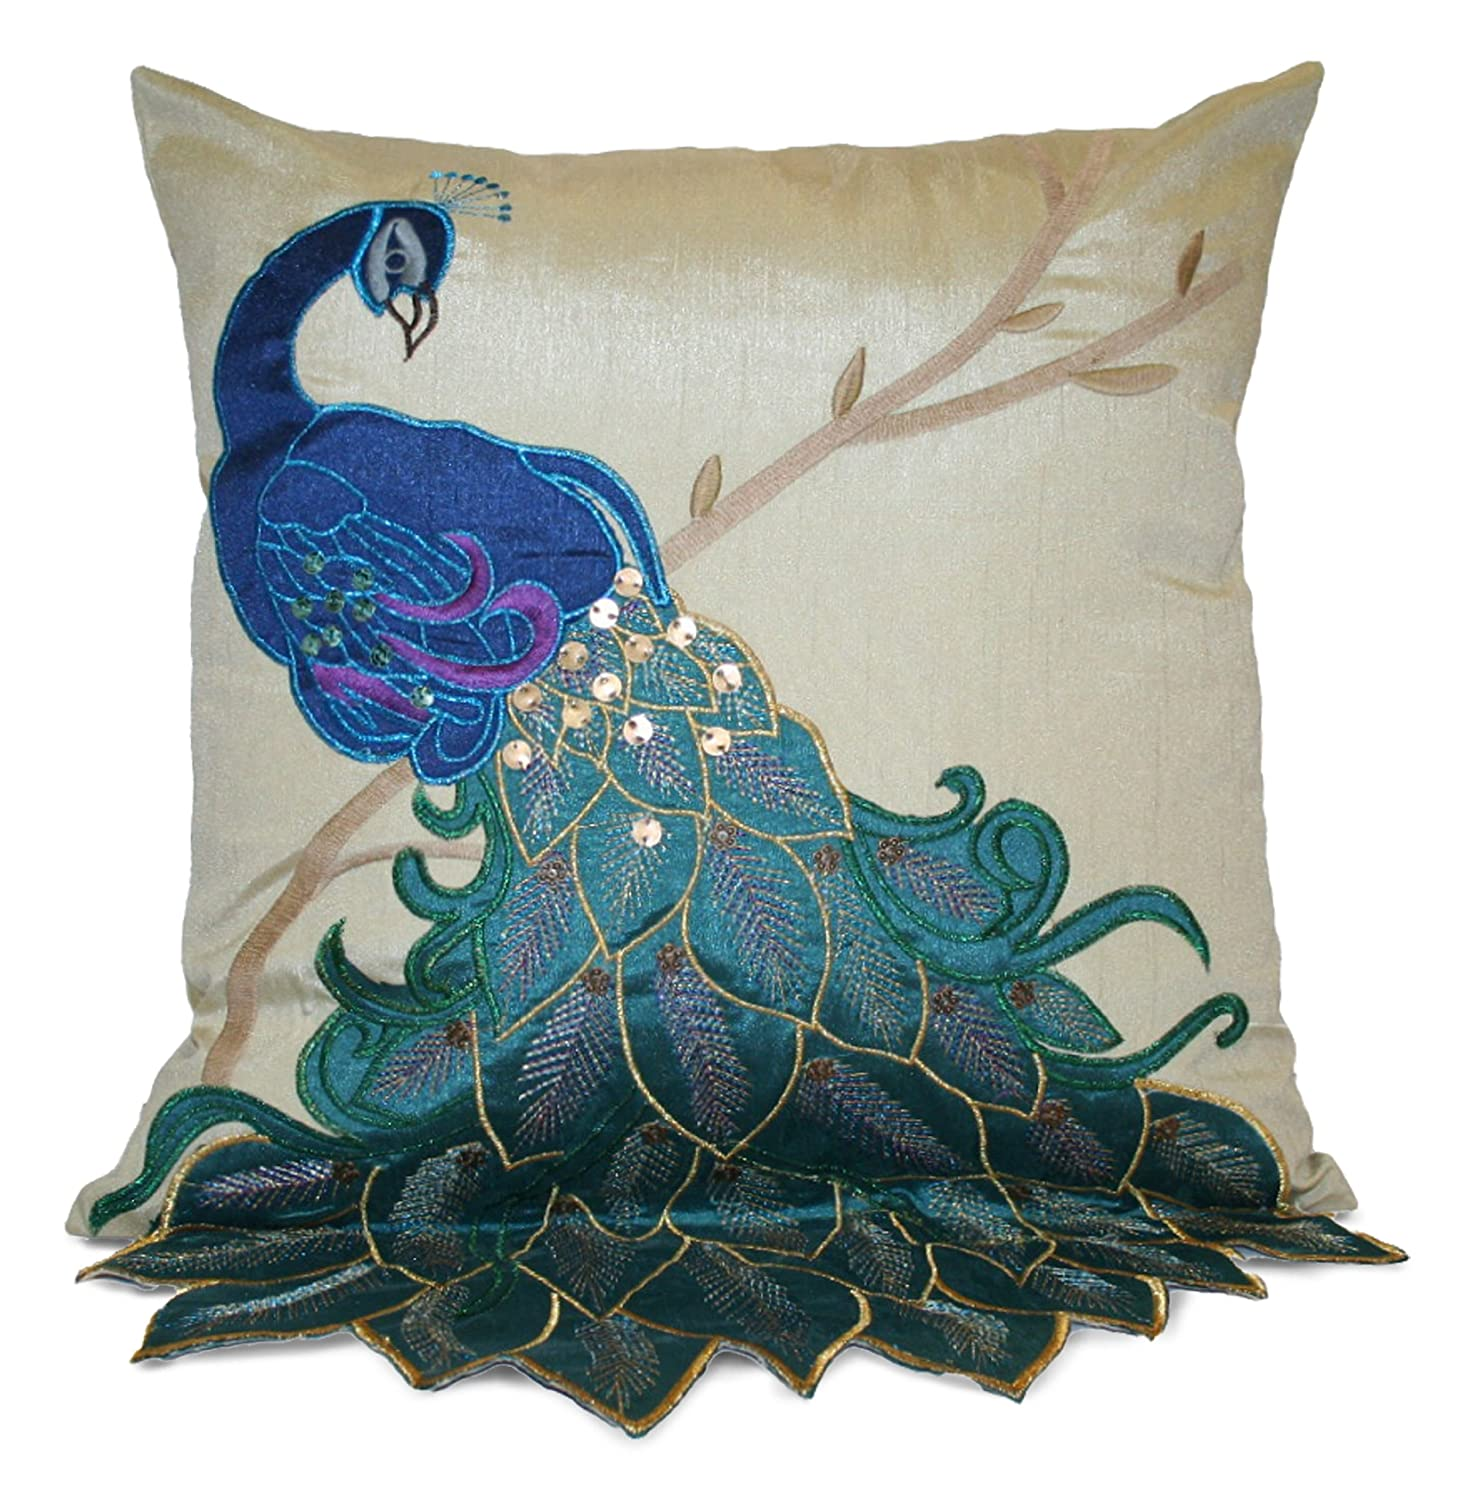 Throw Pillow Peacock : Beautiful Peacock Pillows and Bedding Sets for Your Home